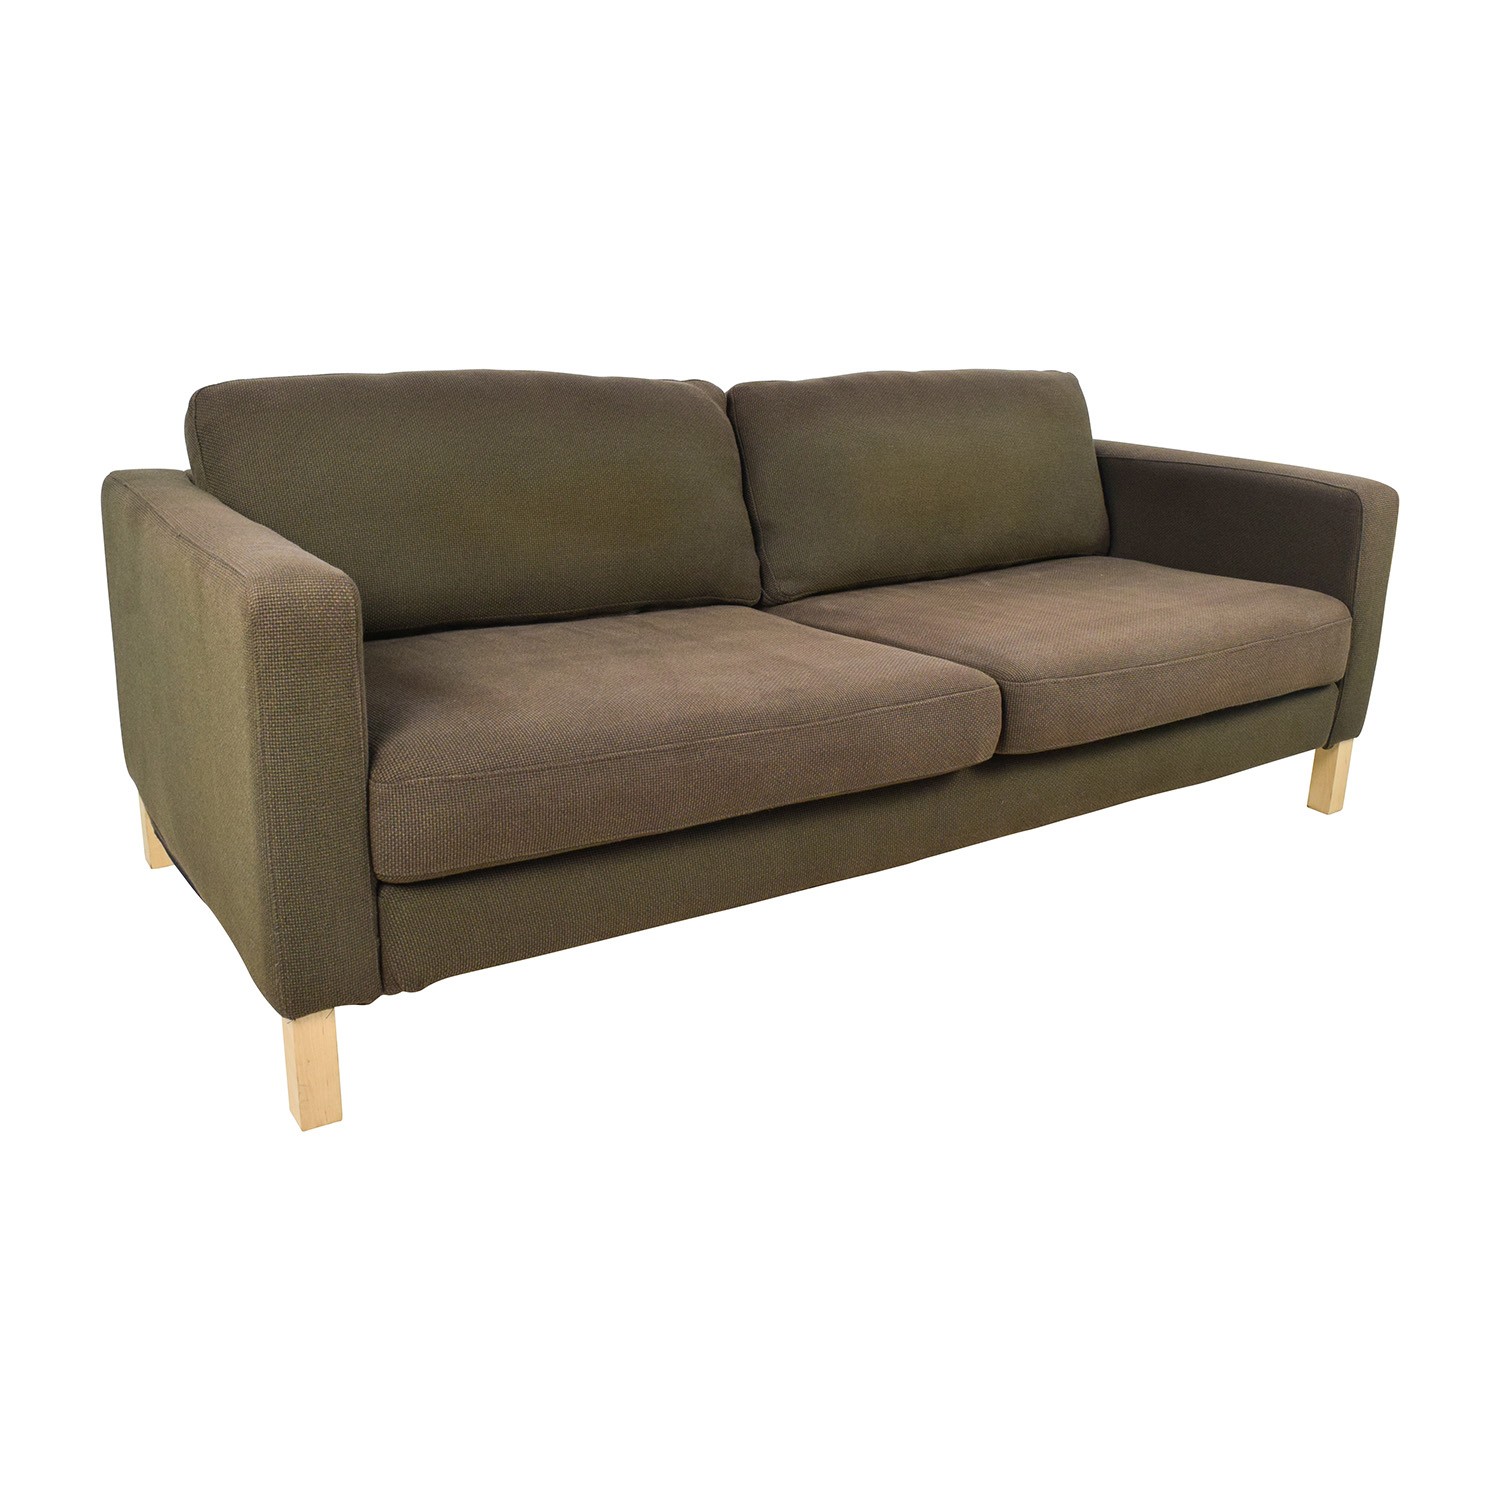 ikea sofa leder design sofa leder ikea ikea timsfors corner sofa the ikea sofa leder braun. Black Bedroom Furniture Sets. Home Design Ideas